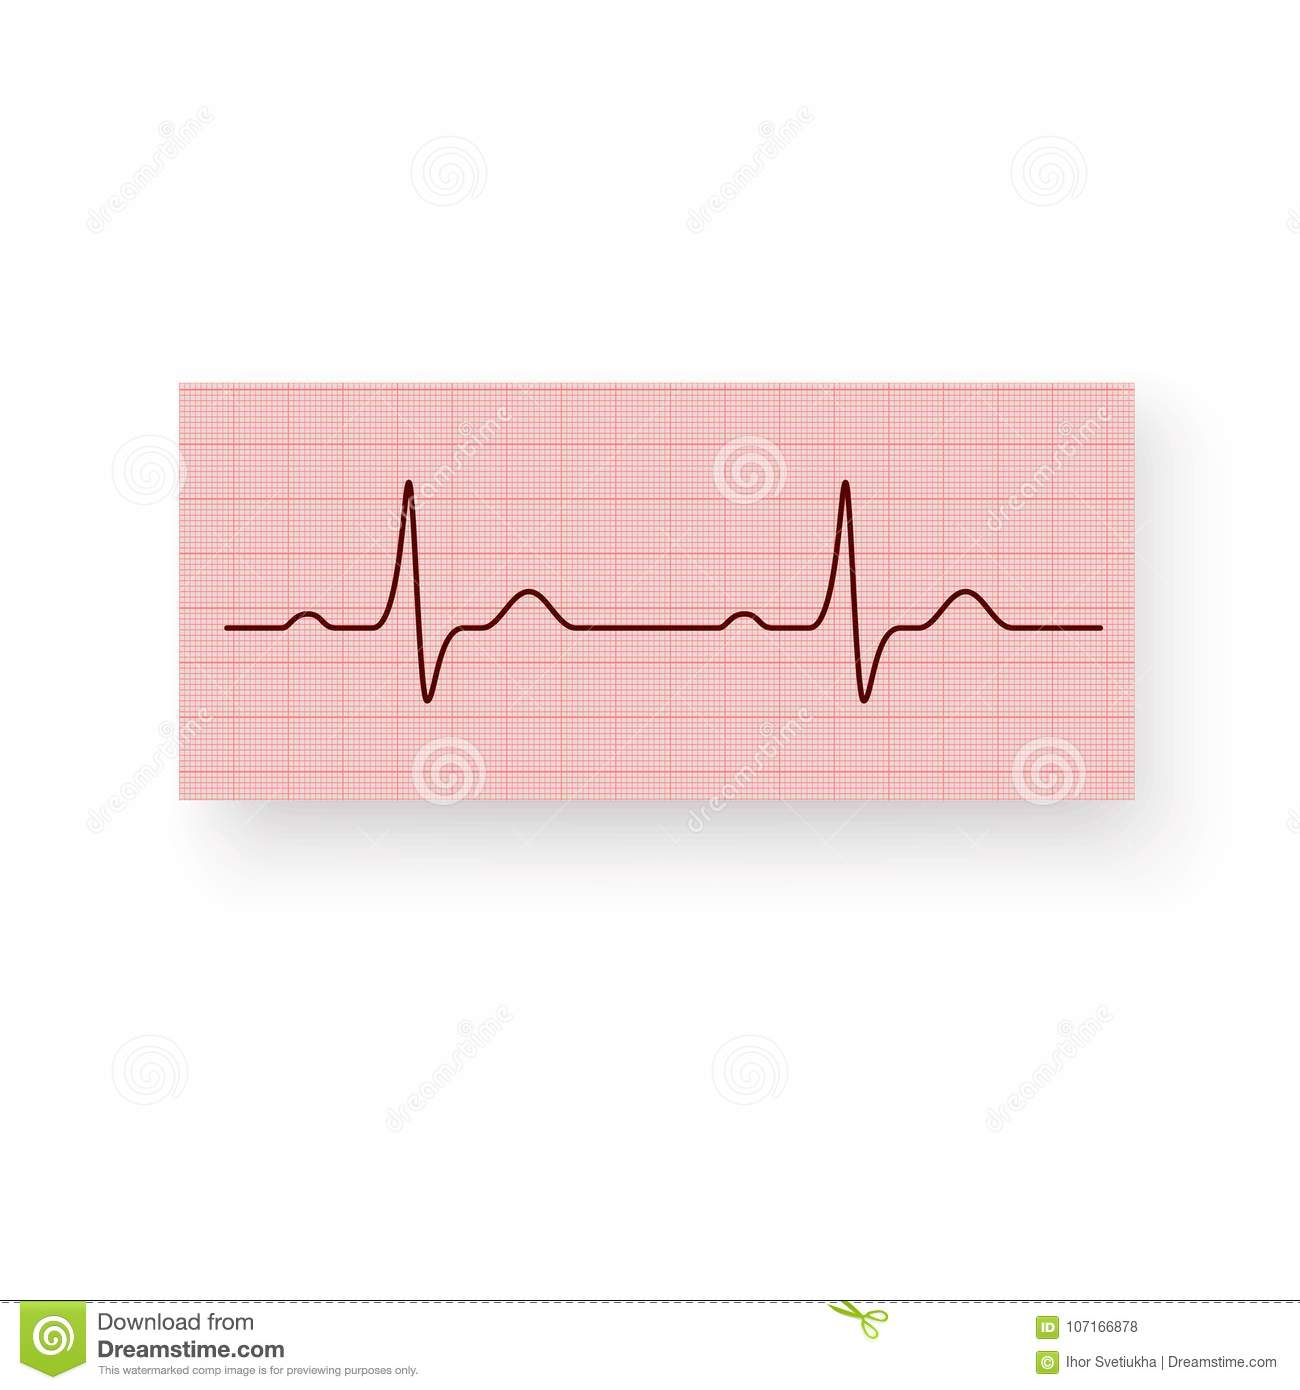 heart rate or a heartbeat on a plotting paper cardiogram of the